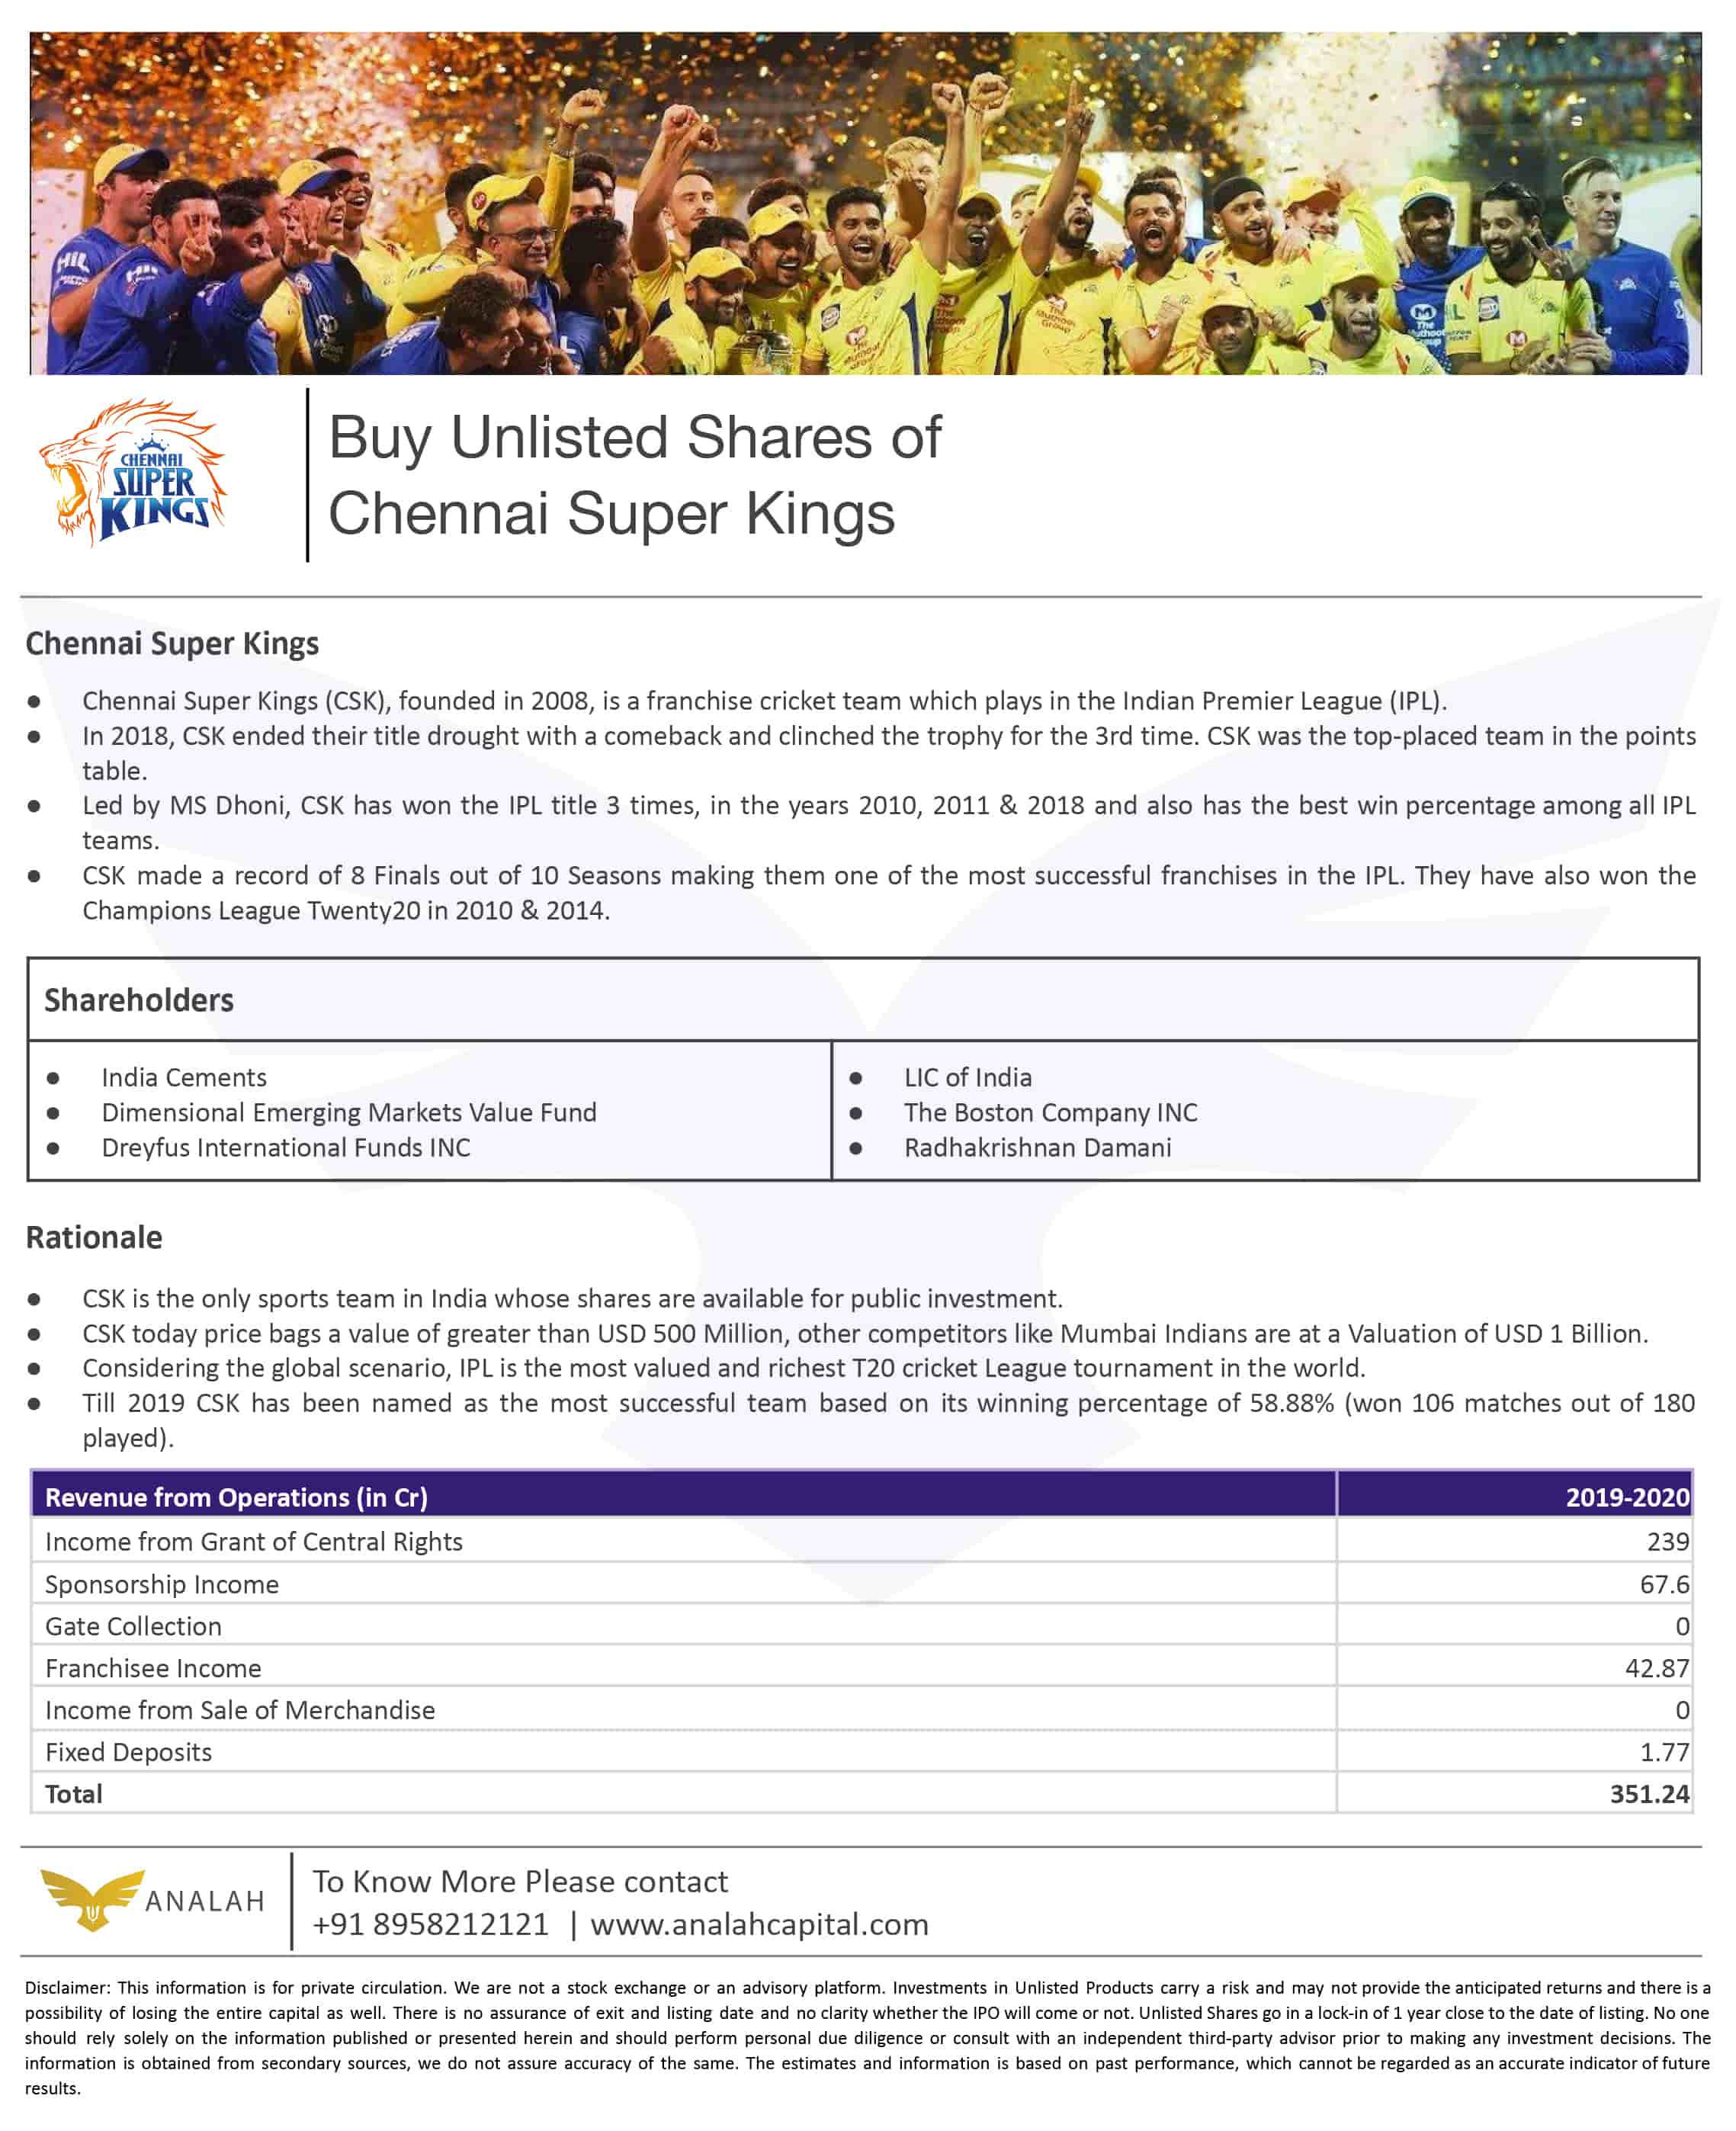 Chennai Super Kings Unlisted Shares